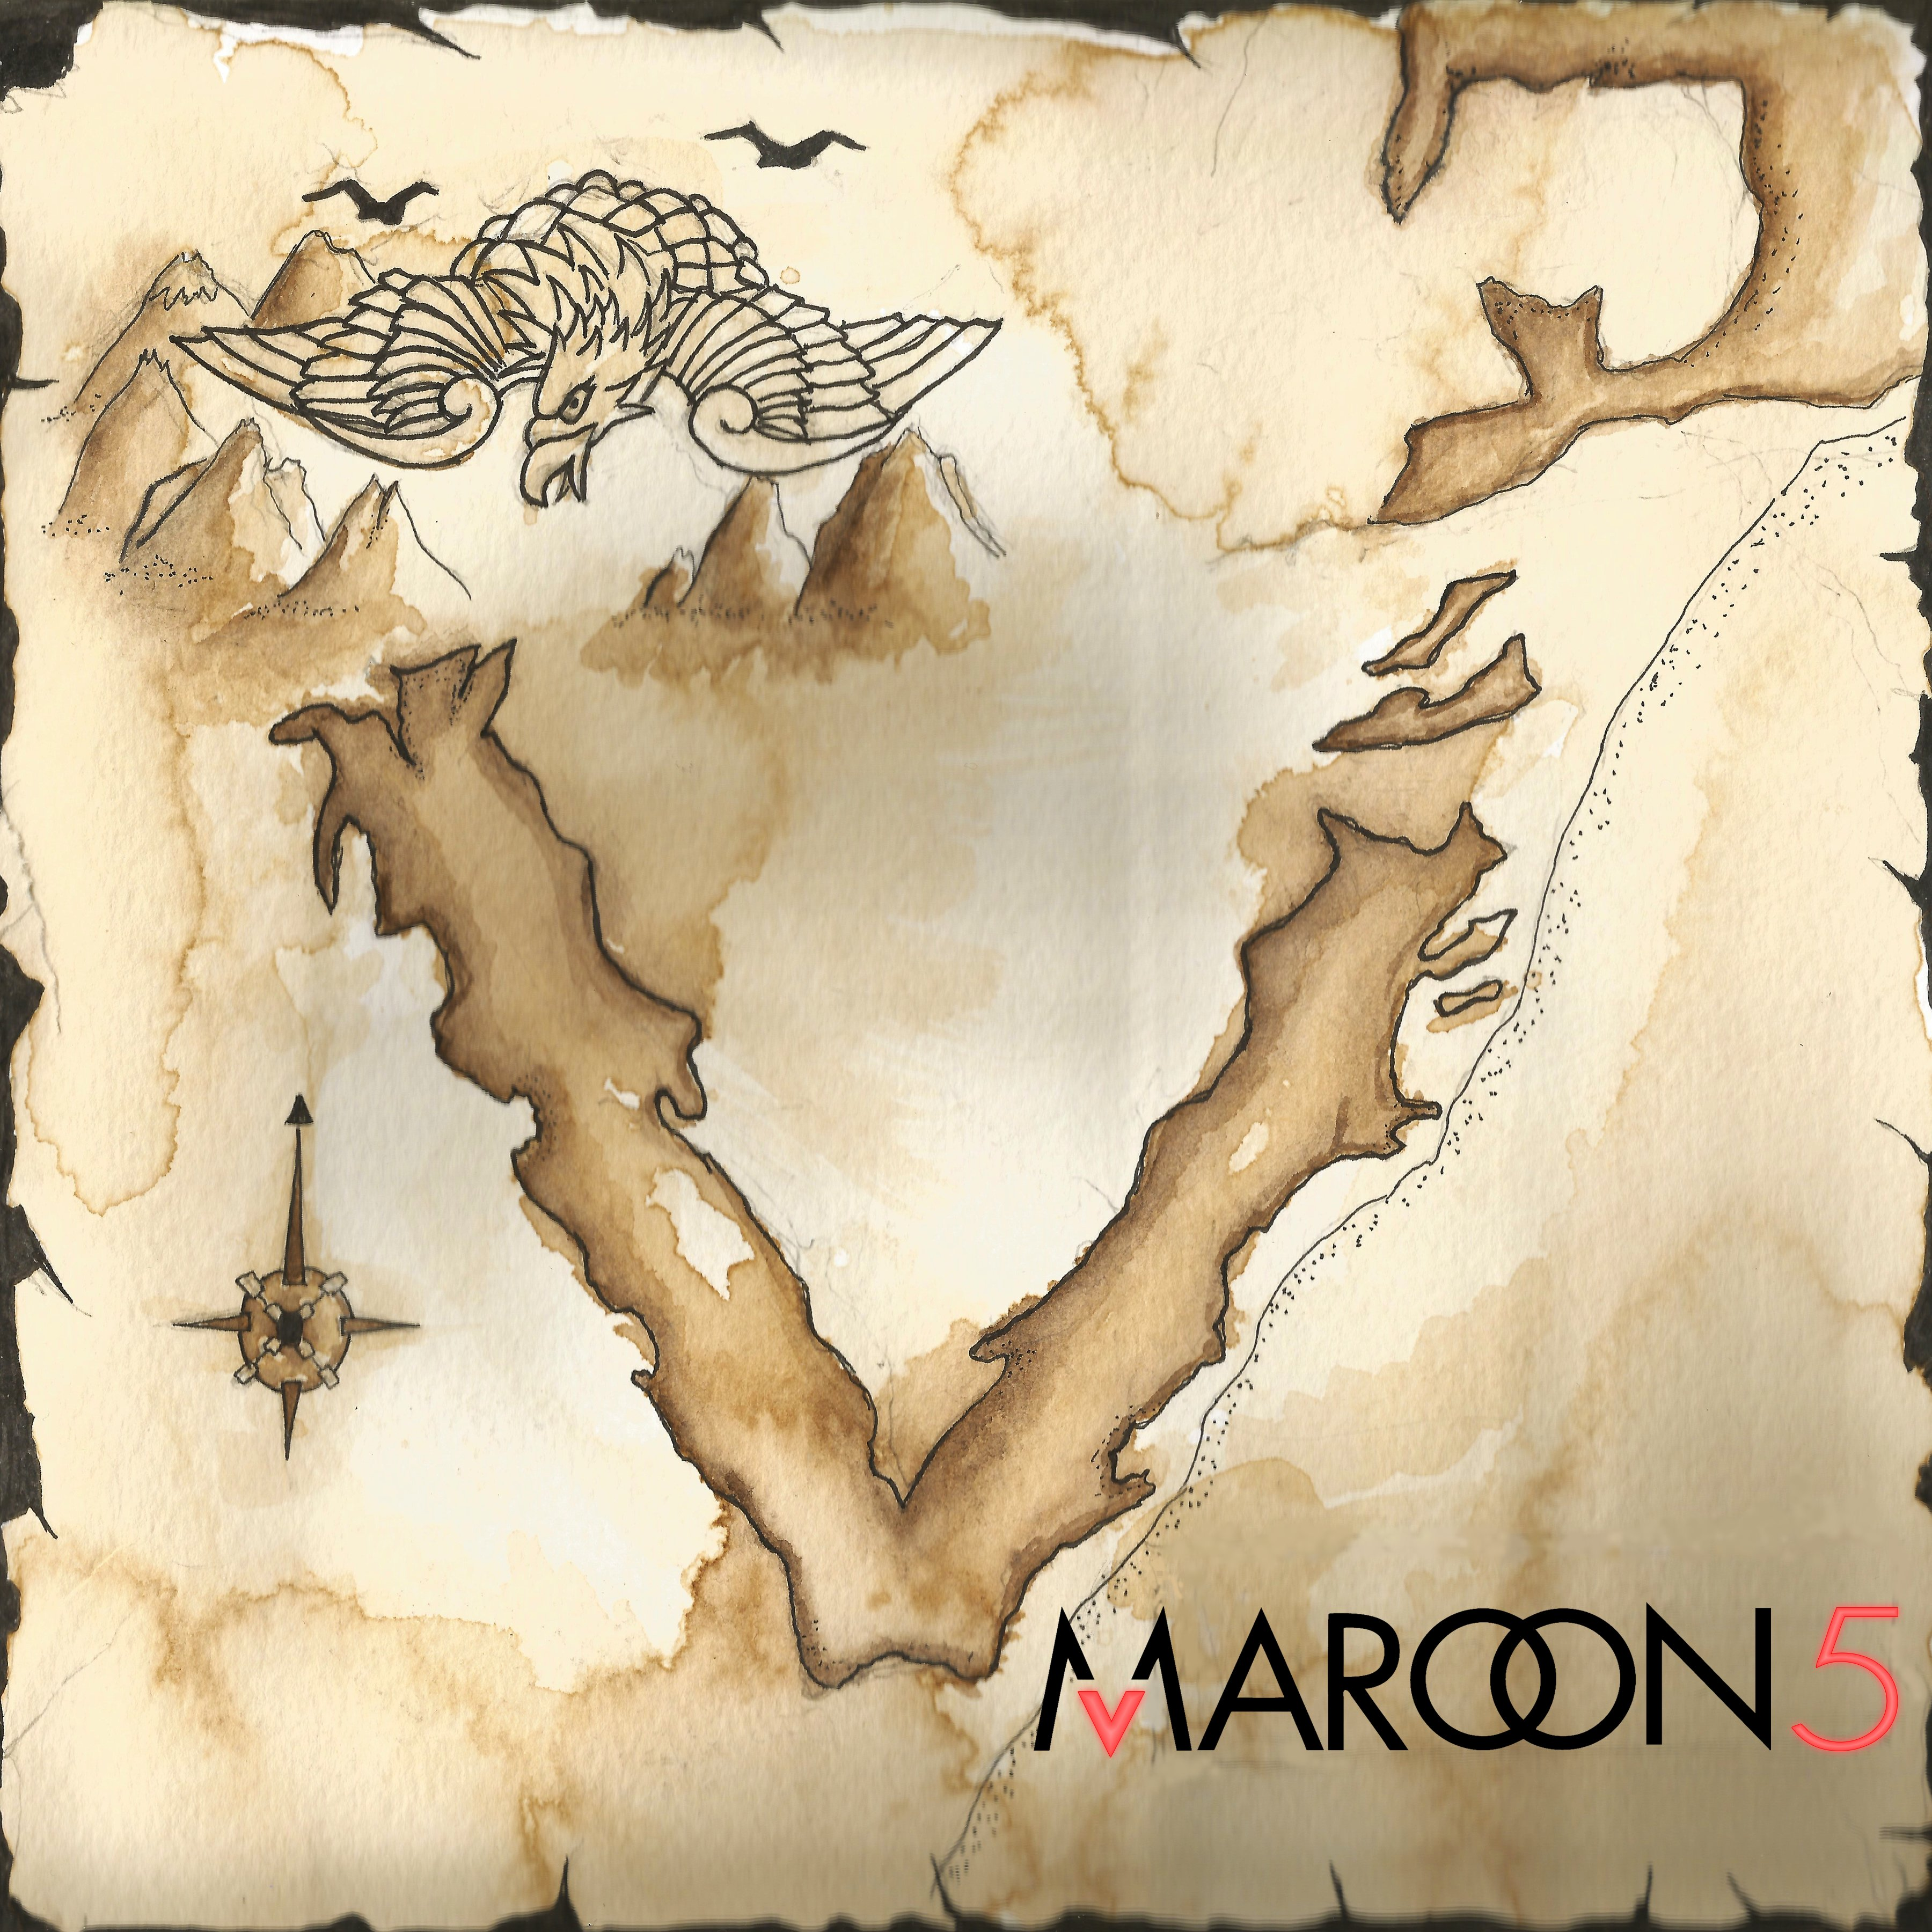 Maroon 5 album cover by hazelmead on DeviantArt